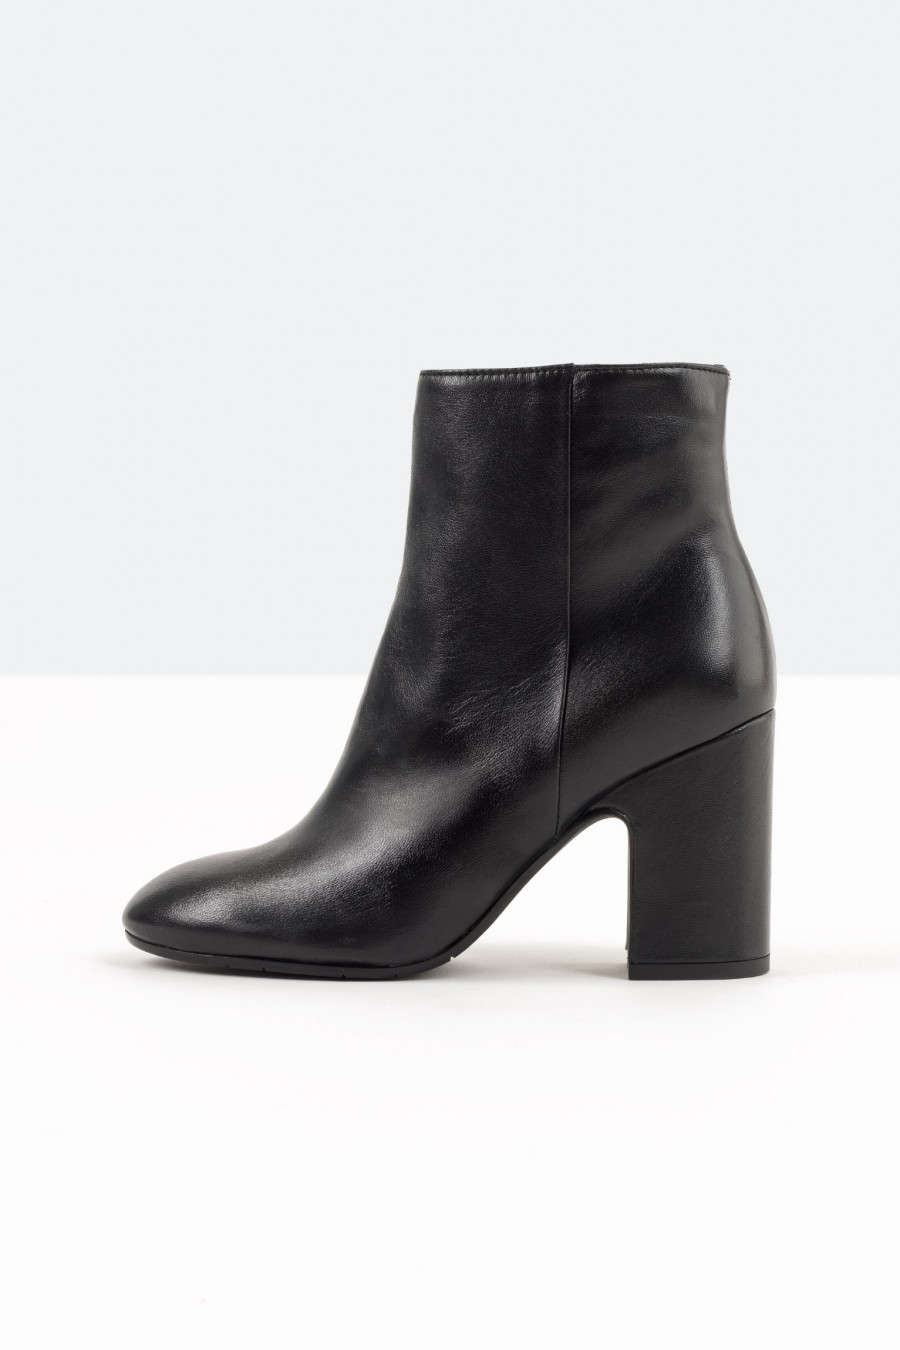 Lazzari black leather ankle boots